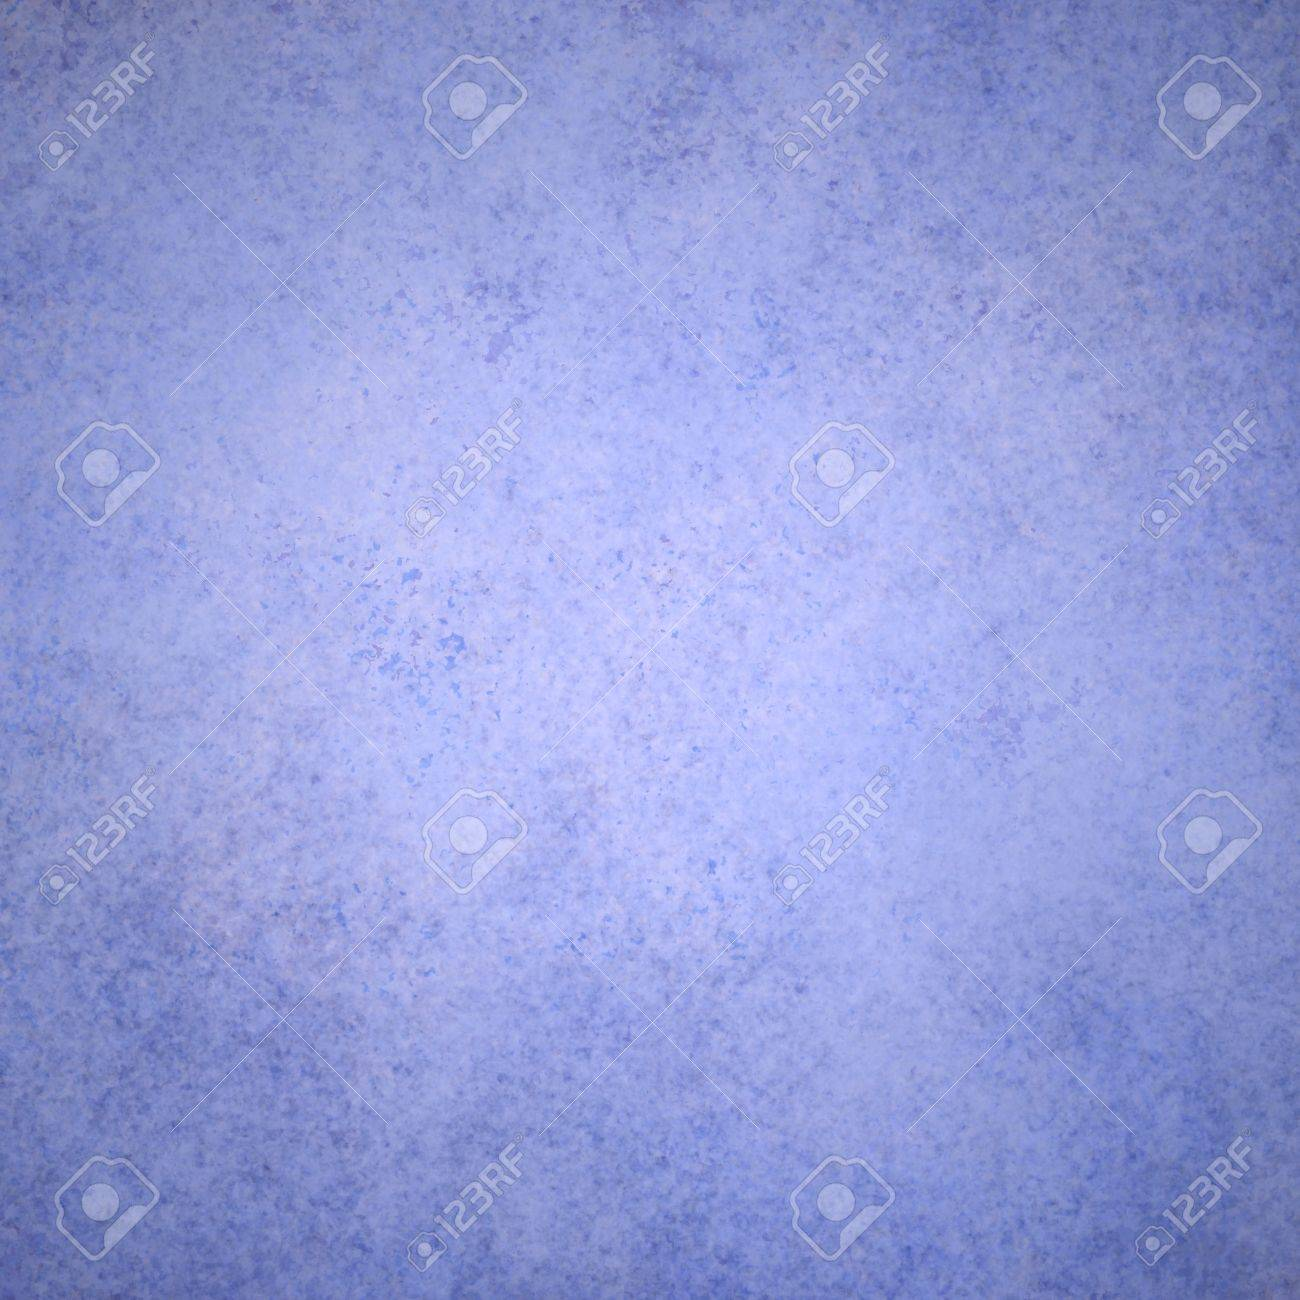 abstract blue background with vintage grunge background texture design with elegant sponge paint on wall illustration for scrapbook paper, or web background templates, grungy old background paint Stock Photo - 22507624